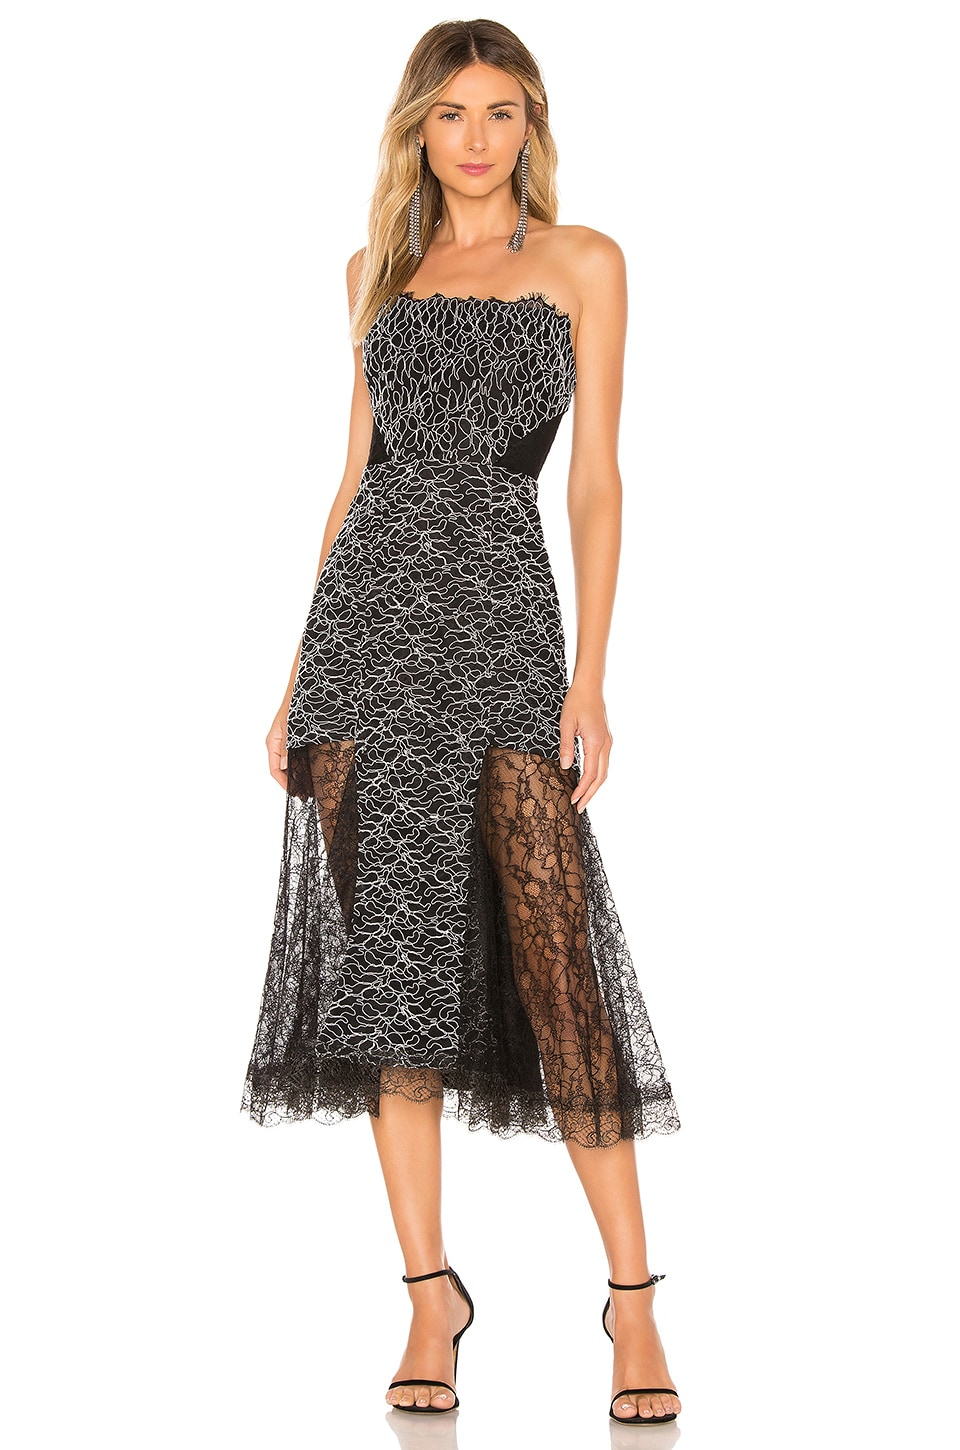 Alexis Ornella Midi Dress in Corded Leaf Lace